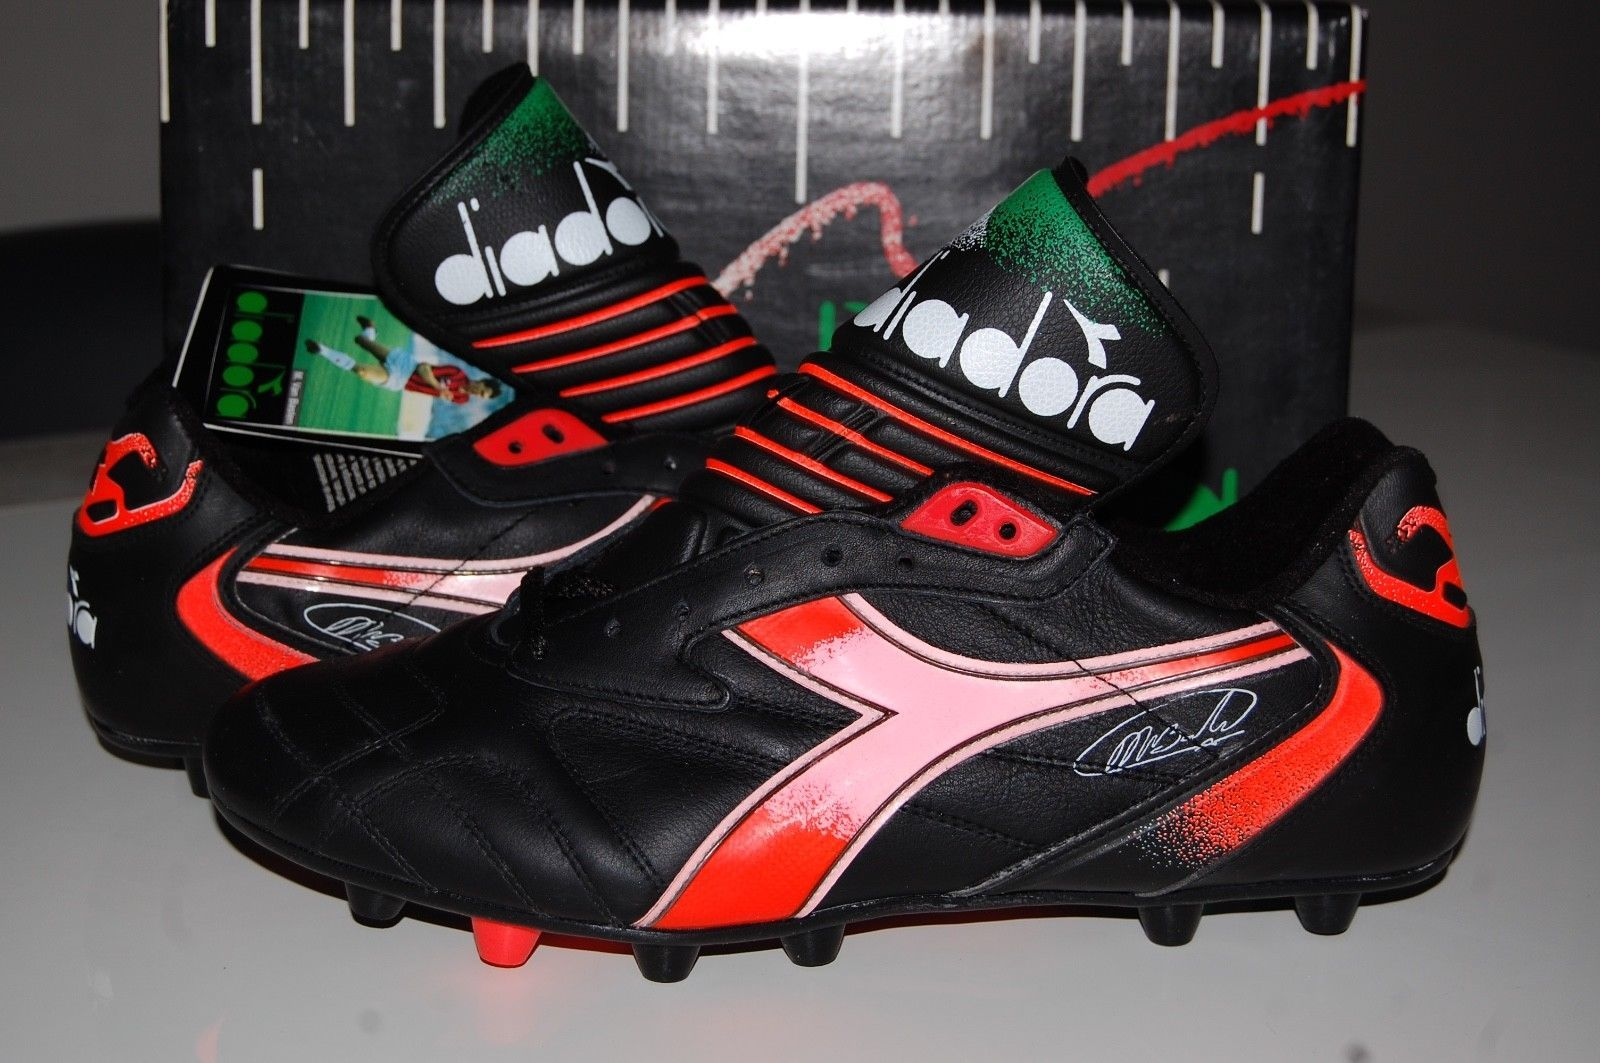 d1706dda DIADORA VINTAGE RAPID MARCO VAN BASTEN 10 UK NEW DEADSTOCK FOOTBALL ...